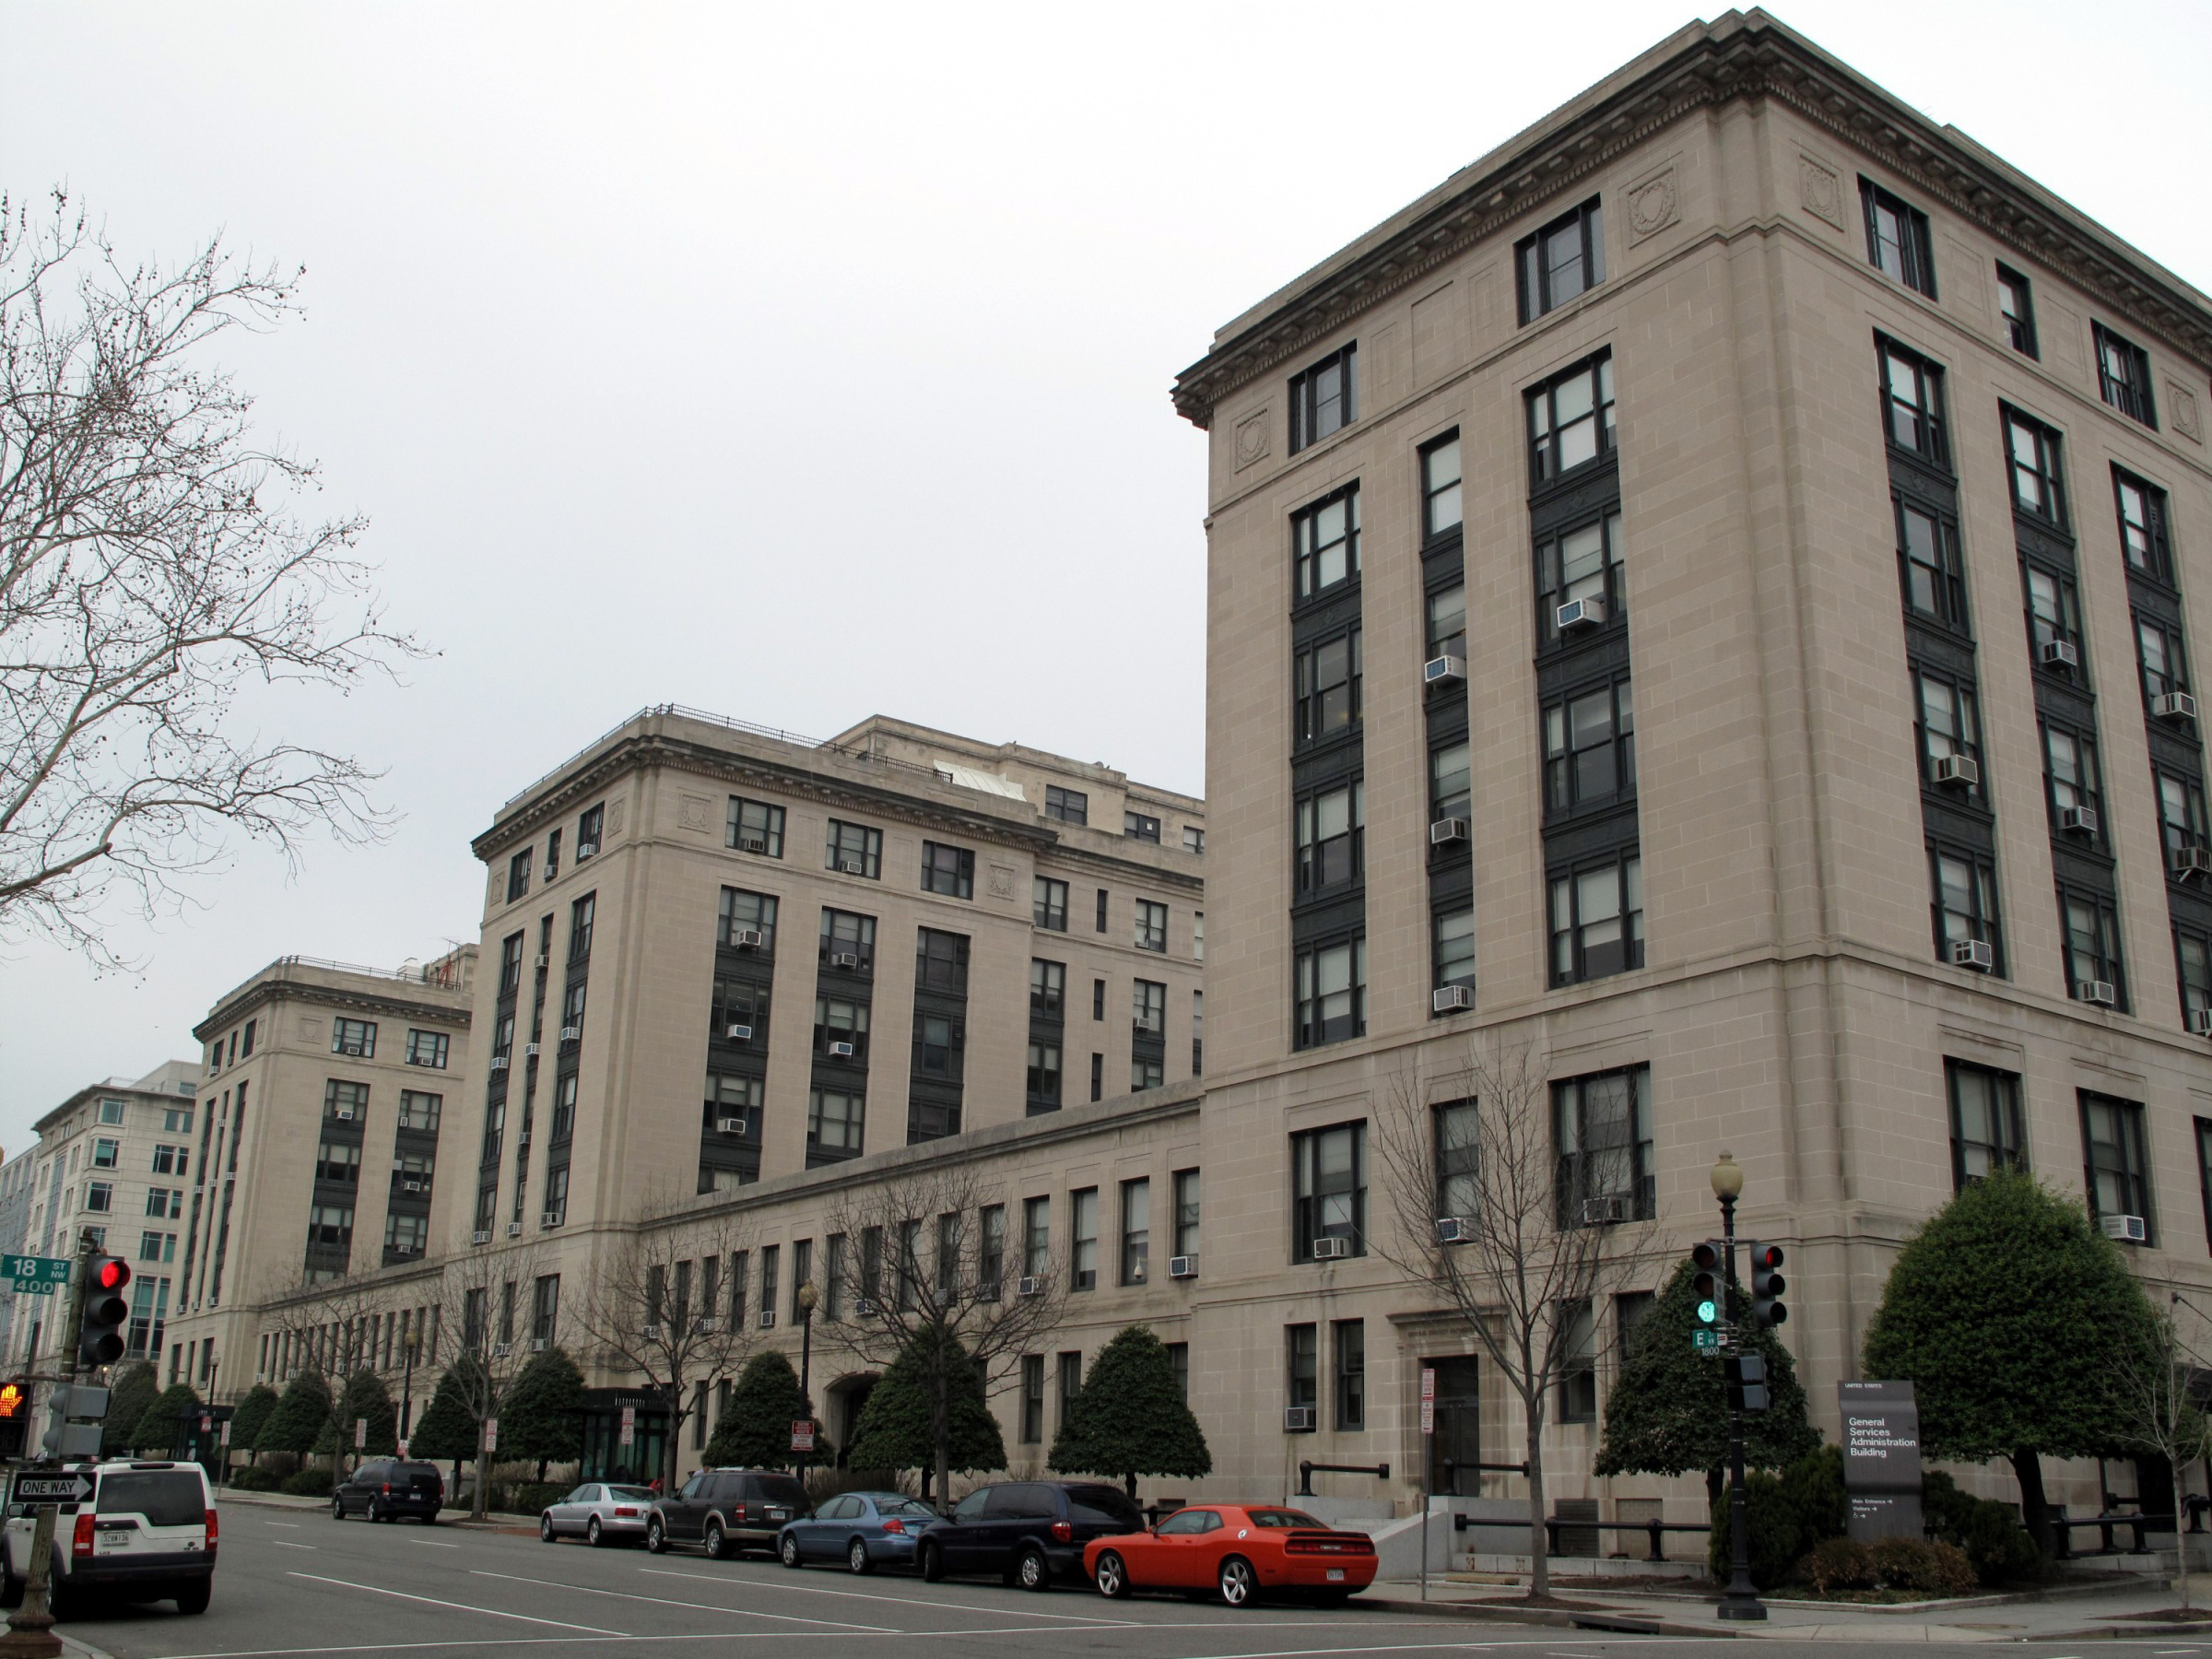 United States General Services Administration Building